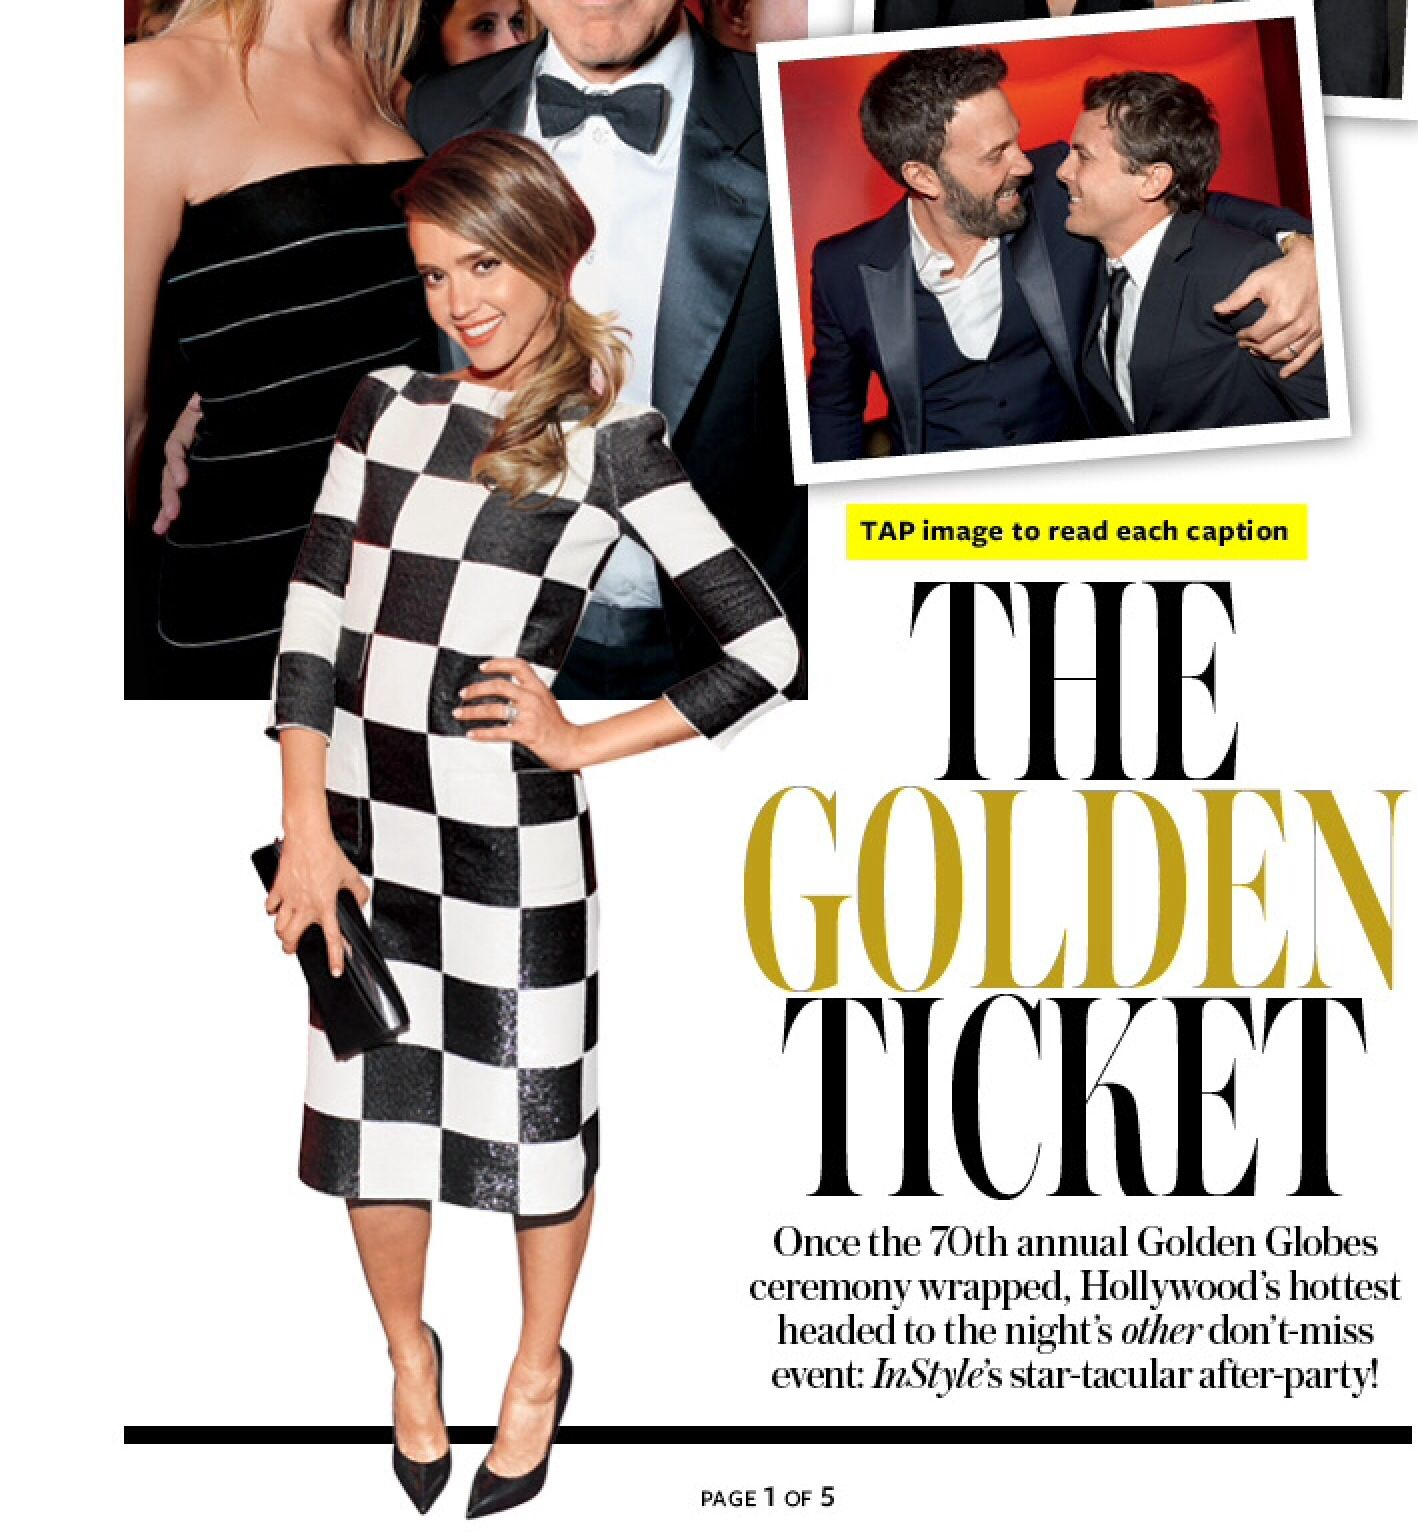 Very flattering pose by Jessica Alba, snatched from In Style Magazine!